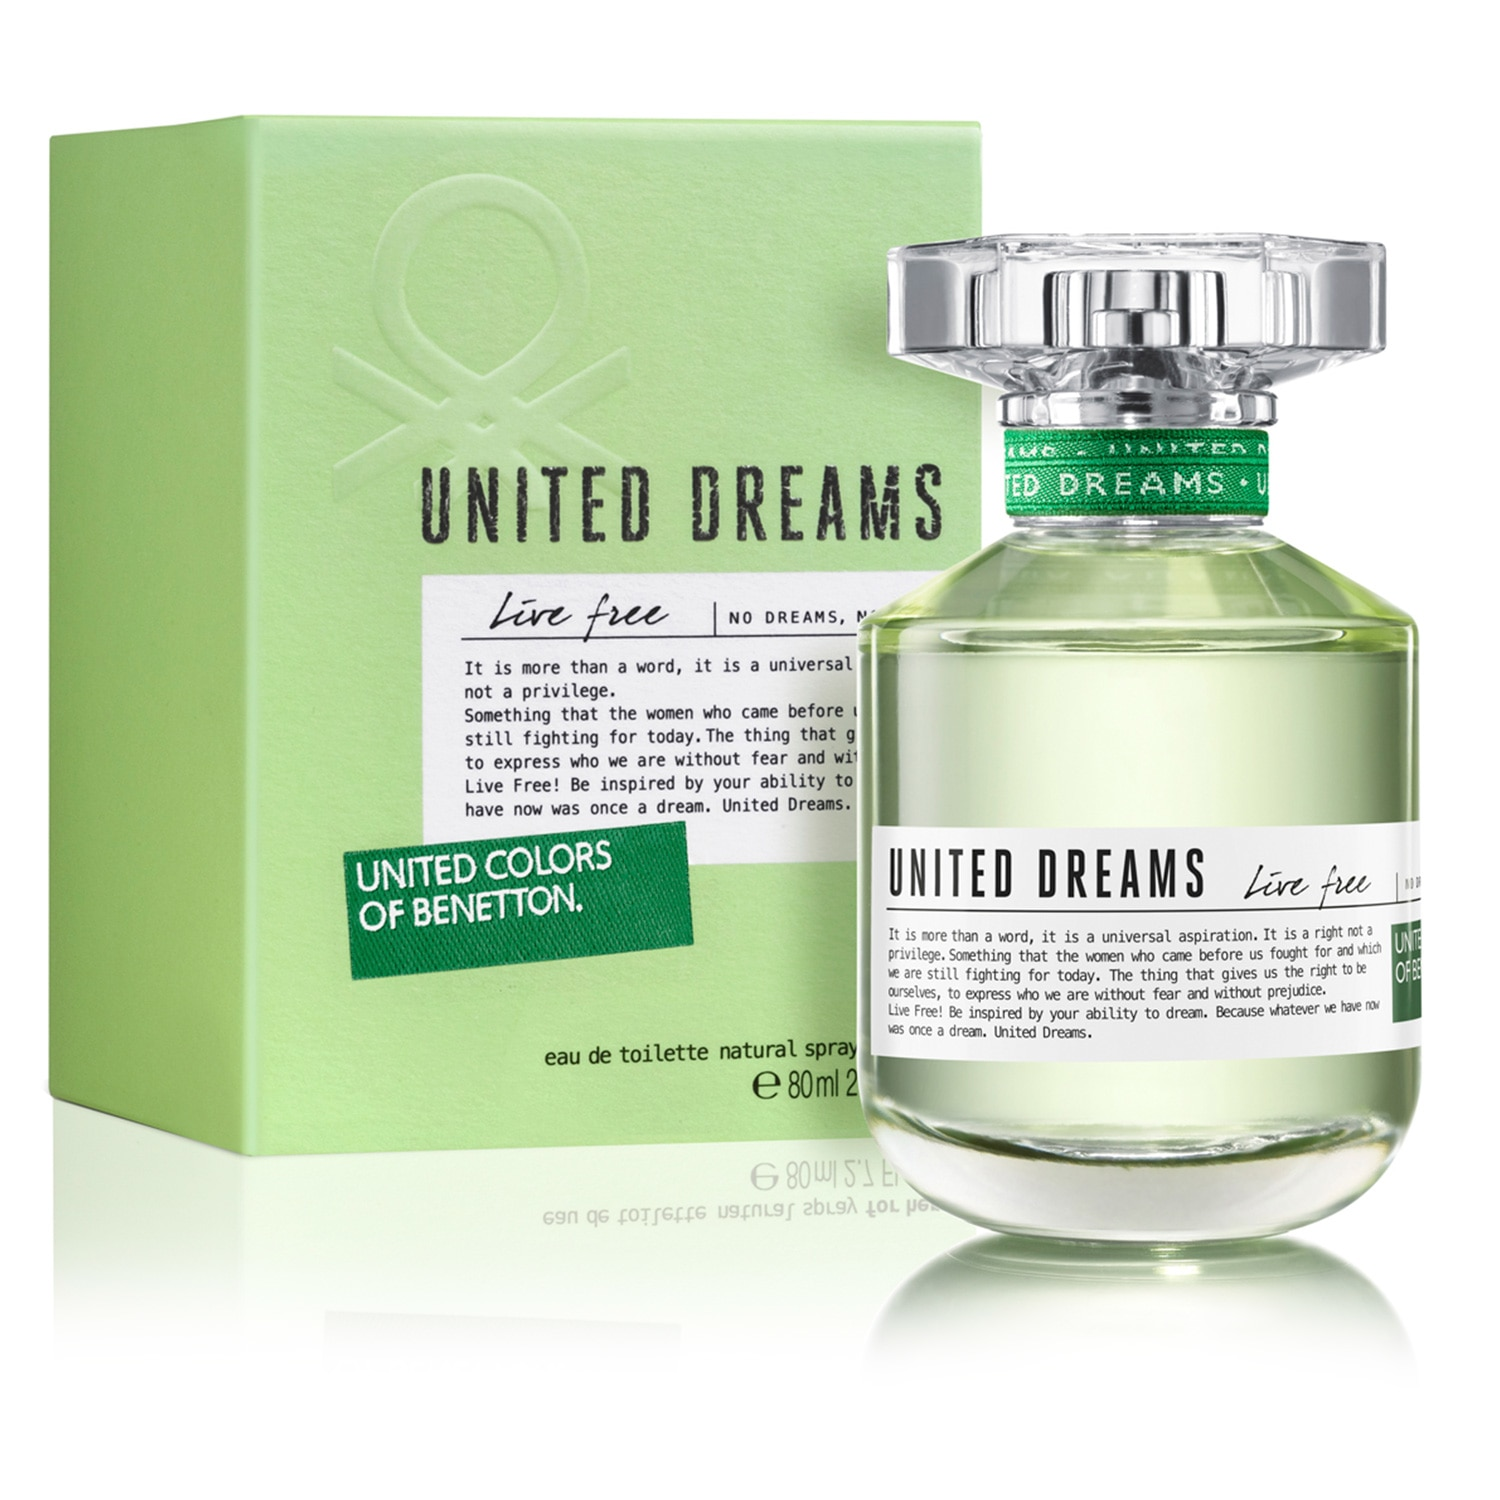 UNITED DREAMS LIVE FREE EDT